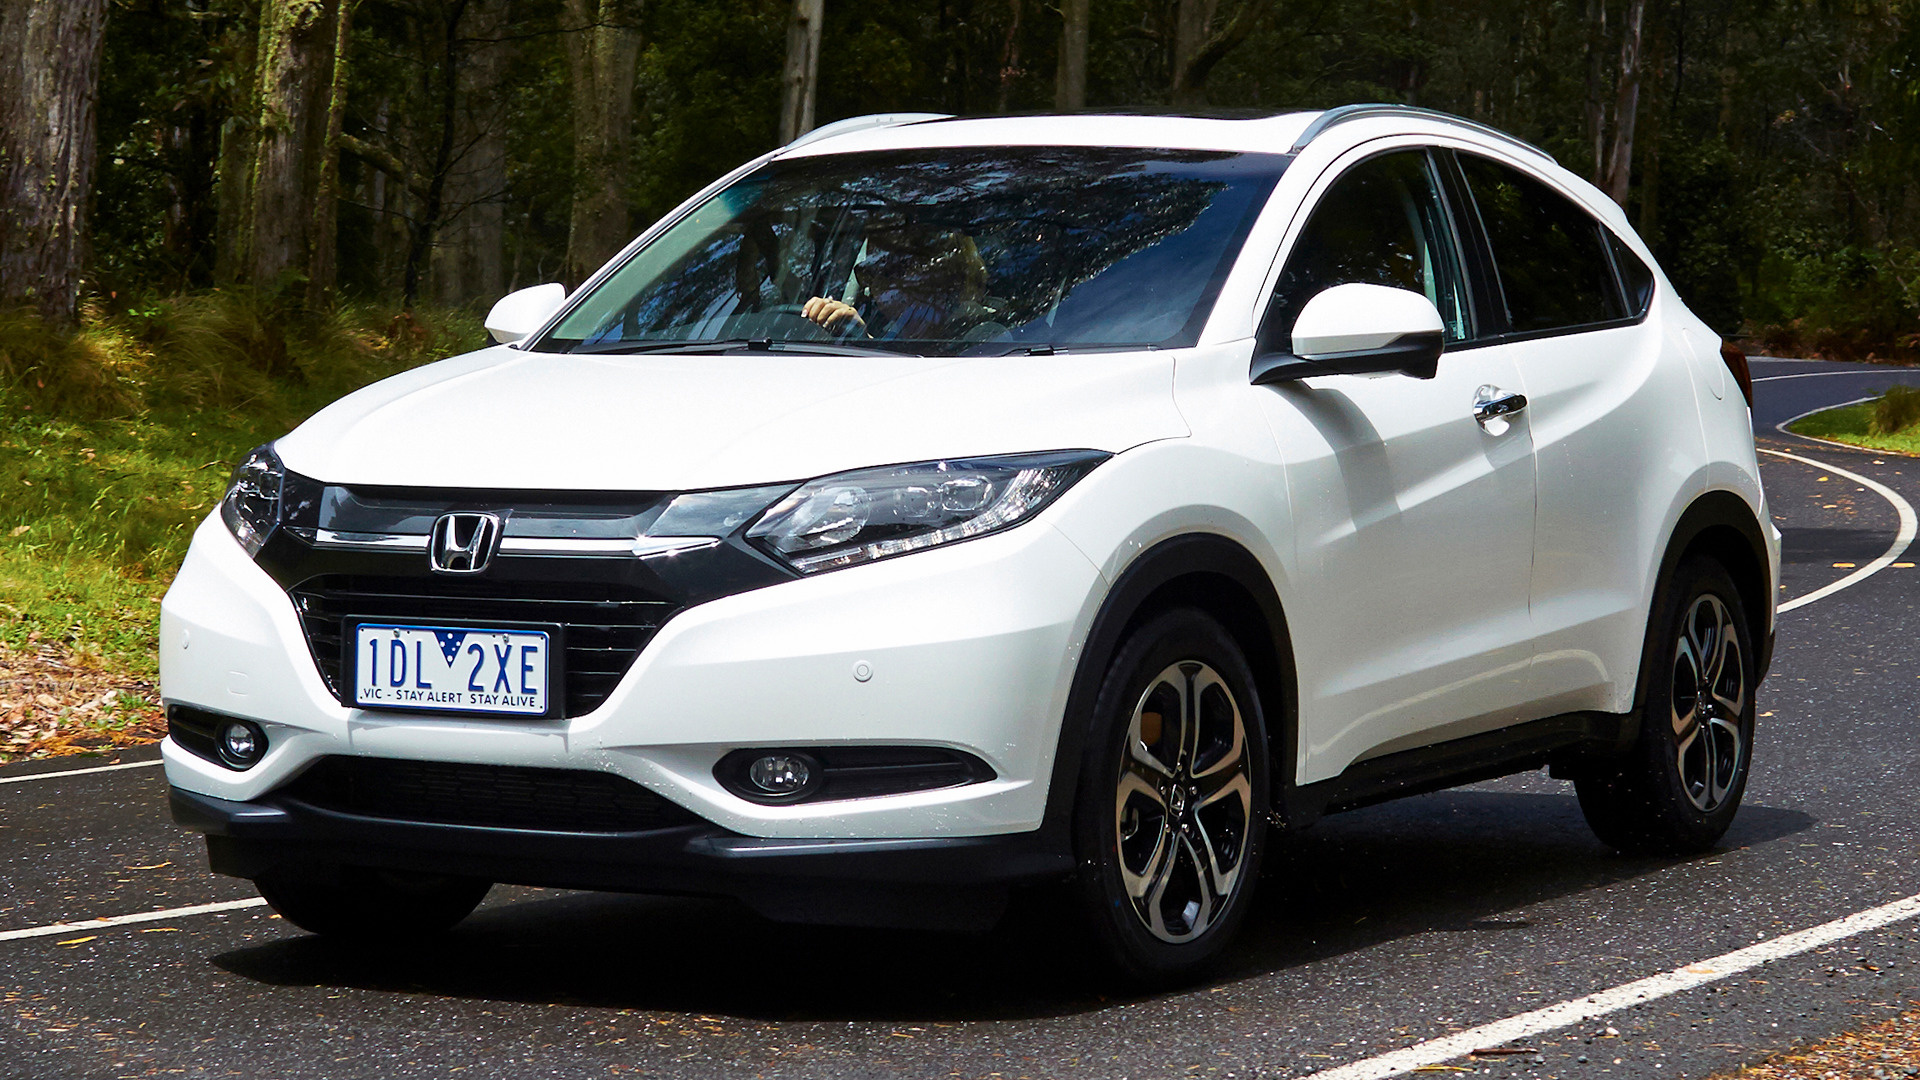 2016 Honda Crv For Sale >> 2015 Honda HR-V (AU) - Wallpapers and HD Images | Car Pixel